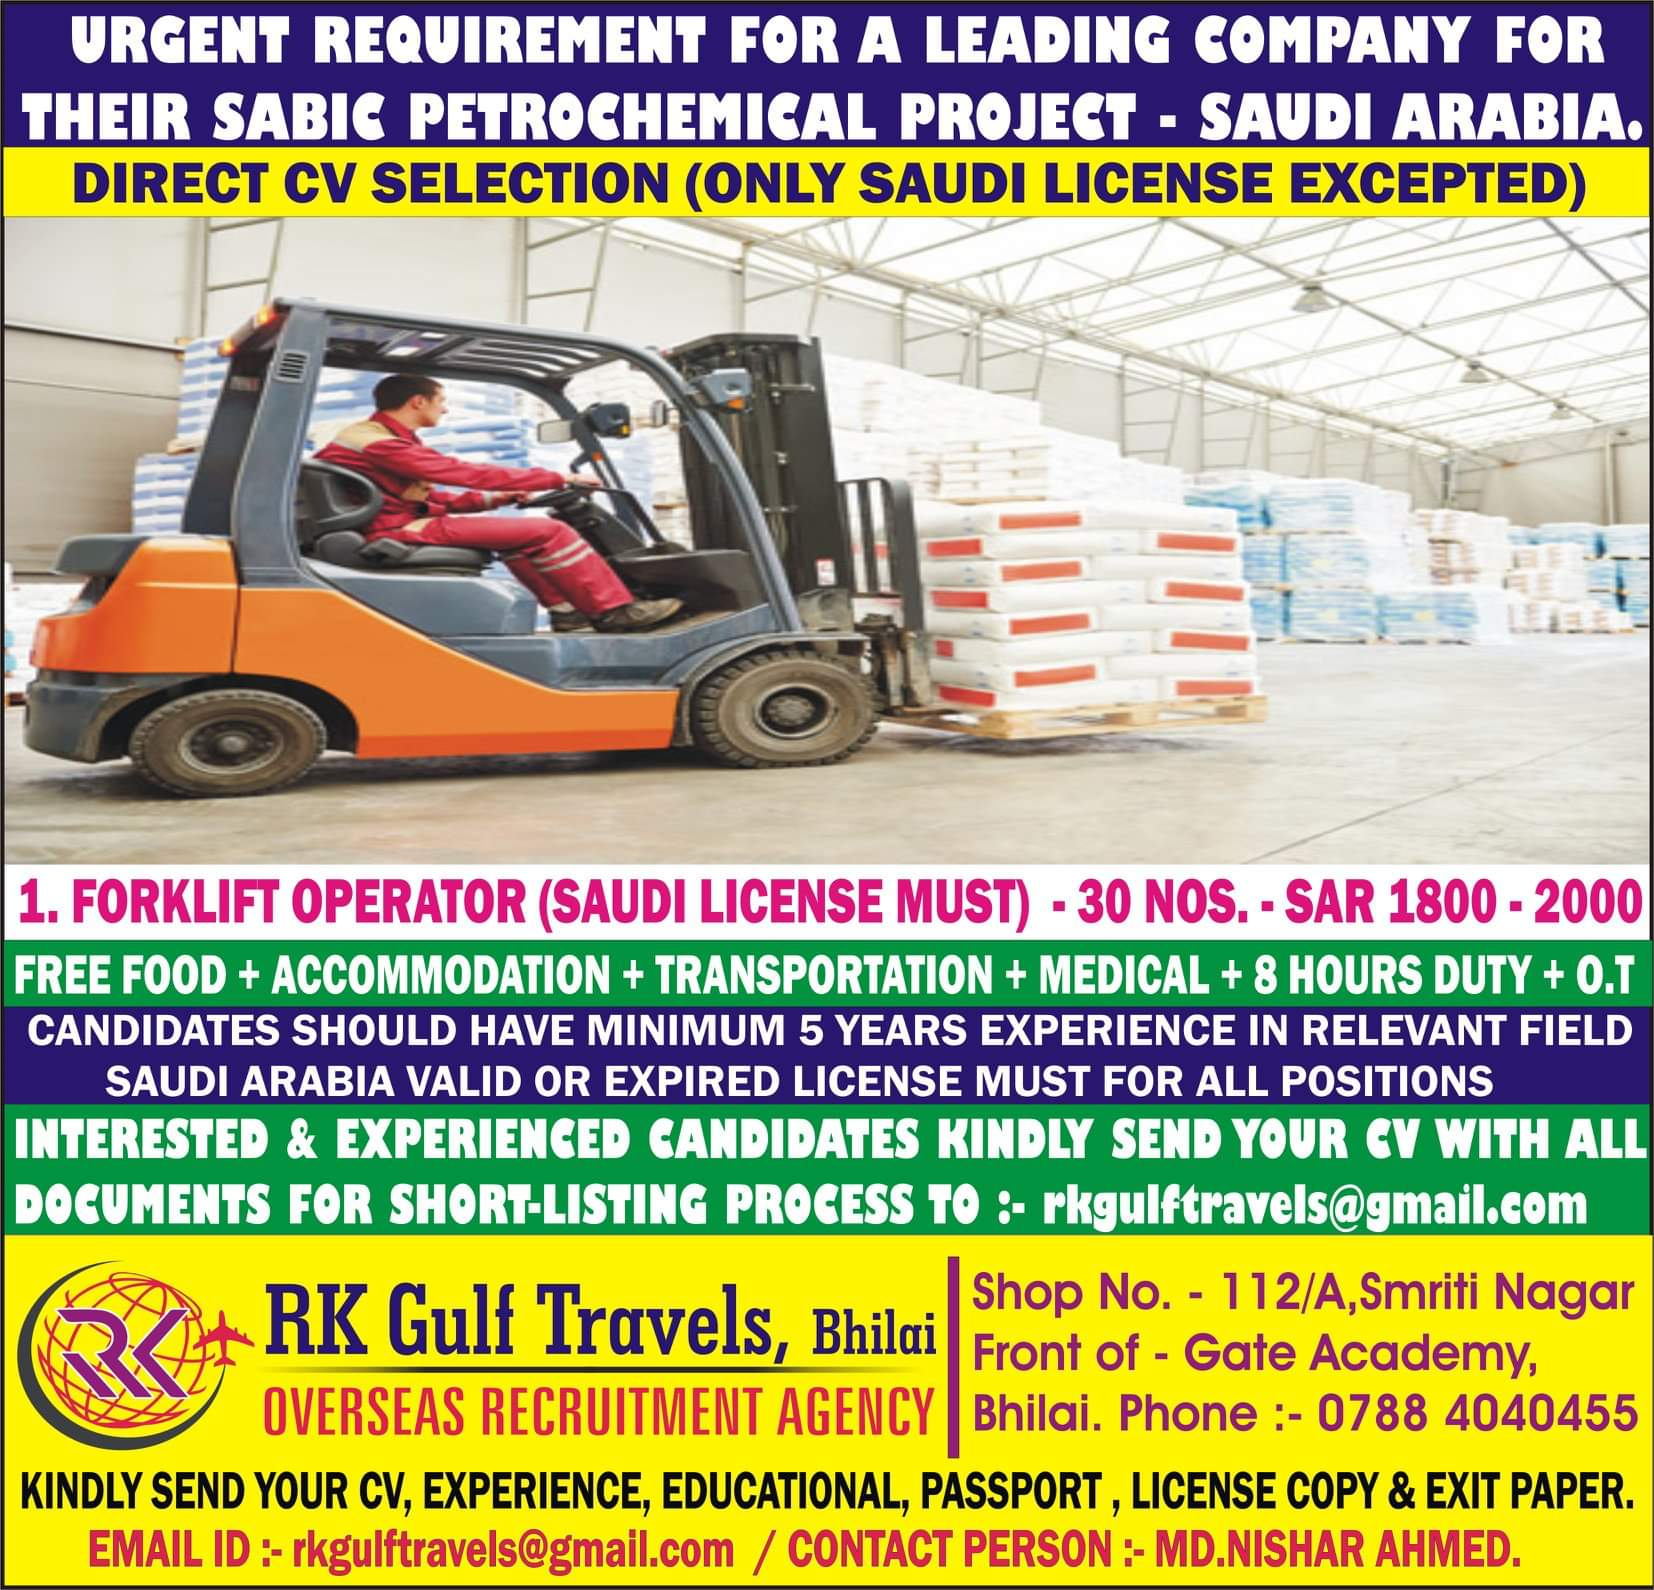 FORKLIFT OPERATOR - URGENT REQUIREMENT FOR A LEADING CONSTRUCTION